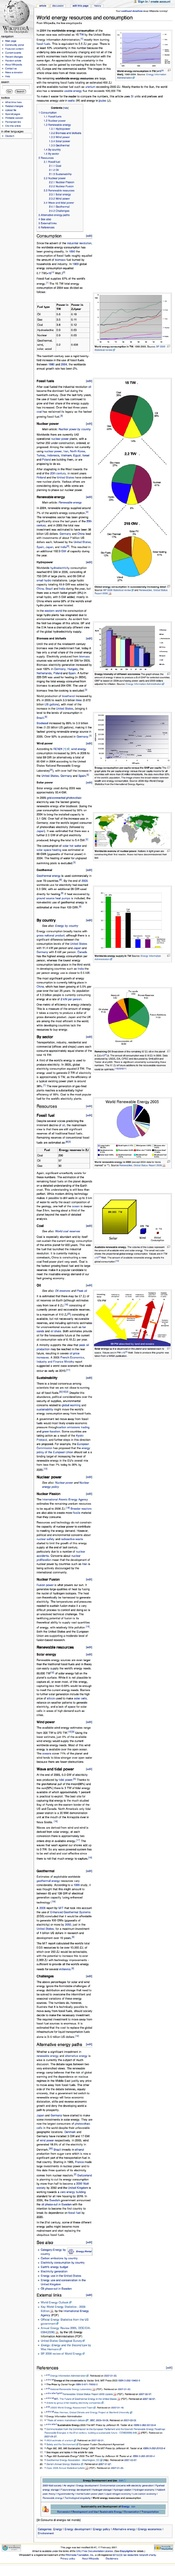 World energy resources and consumption - Wikipedia, the free encyclopedia (20070217)